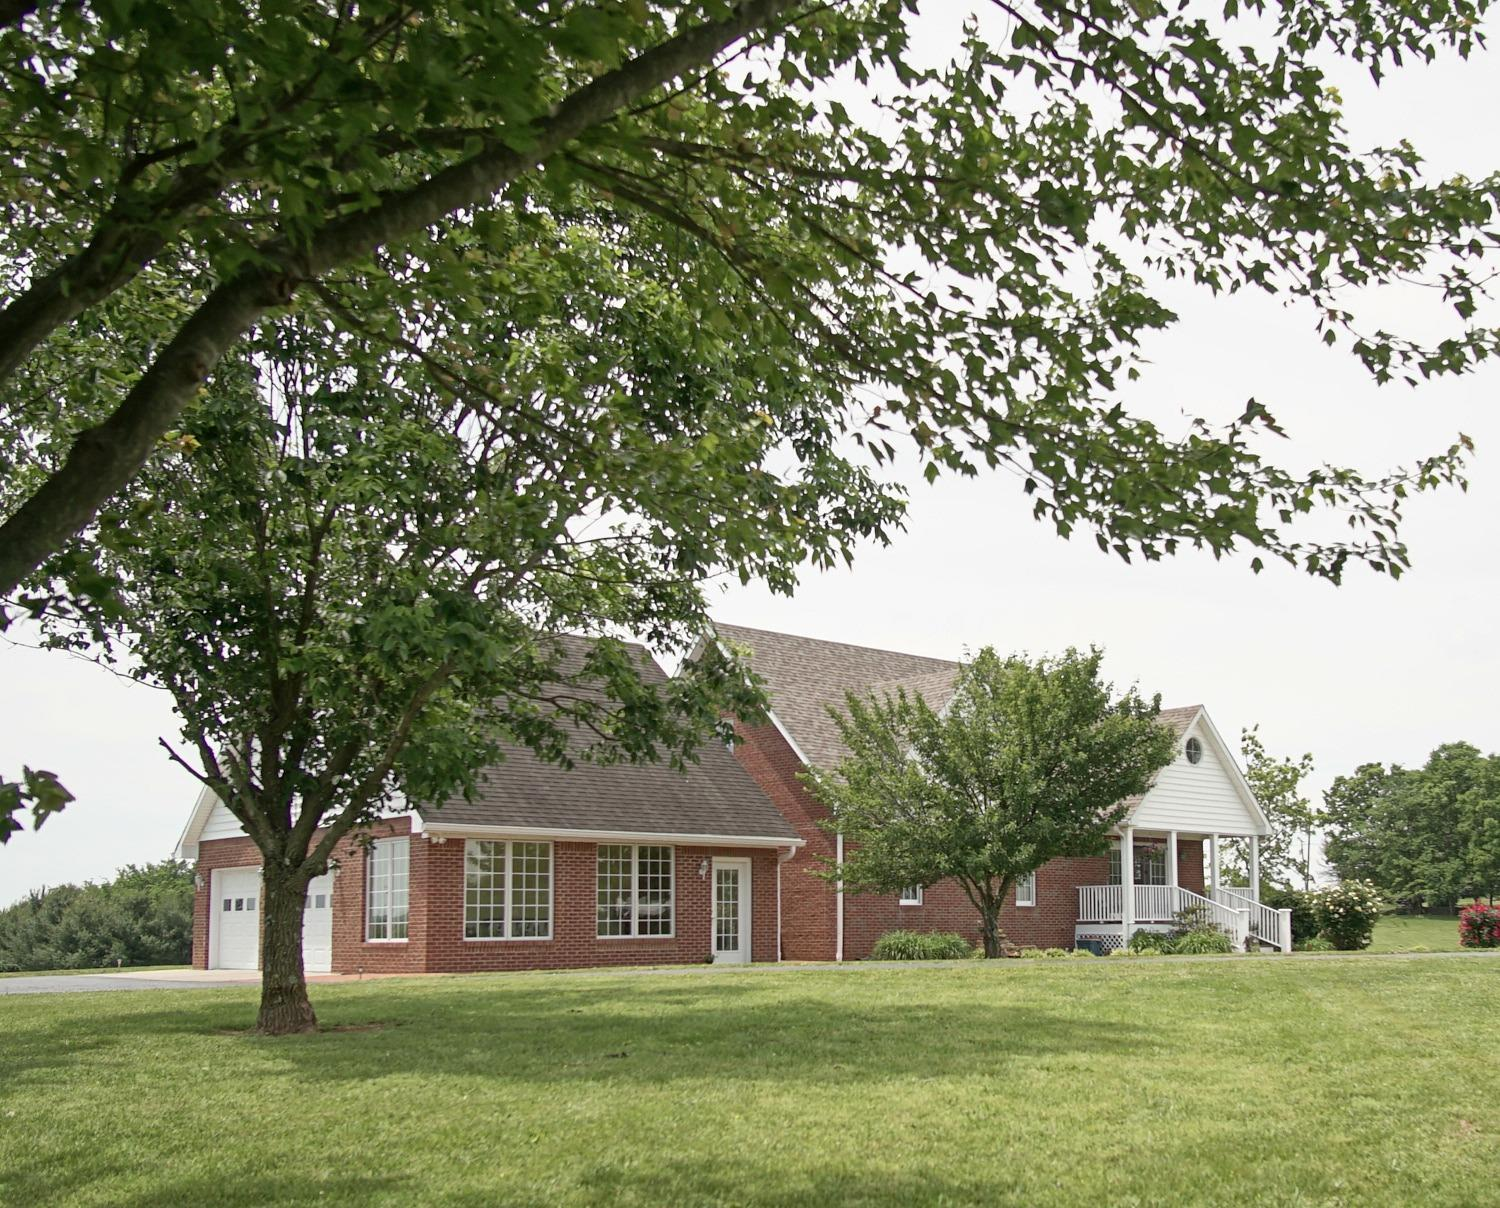 Searching%20for%20that%20special%20home%20with%20an%20in%20the%20country%20feel%20close%20to%20town?%20This%20brick%20home%20sits%20on%20a%20gorgeous%206.3%20acre%20tract%20of%20land.%20Its%20a%20premium%20location%20in%20Boyle%20County.%20This%20property%20has%20the%20feel%20of%20being%20miles%20out%20of%20town%20but%20is%20very%20close%20to%20everything.%20Near%20golf%20courses,%20Stores,%20and%20any%20other%20convenience%20you%20would%20expect%20if%20you%20were%20living%20in%20town.%20You%20will%20love%20the%20amazing%20views%20and%20sunsets%20as%20you%20look%20out%20over%20the%20beautiful%20Central%20Kentucky%20countryside.%20There%20is%20a%20wonderful%20stone%20fence%20meticulously%20restored%20by%20the%20owner.%20A%20large%20Garage/Workshop%20is%20perfectly%20situated%20on%20the%20property%20and%20features%20a%20wrap%20around%20porch.%20Enjoy%20the%20views%20and%20tranquility%20of%20the%20location%20from%20the%20covered%20deck,%20back%20porch%20and%20%20sunrise%20room''%20specifically%20designed%20to%20enjoy%20the%20sunrise%20year%20round!%20Other%20features%20include%20a%20unique%20layout%20with%20three%20bedrooms%20and%20three%20bathrooms,%20as%20well%20a%20finished%20partial%20walkout%20basement%20with%20a%20patio.%20Call%20today%20to%20learn%20more%20about%20this%20wonderful%20property!